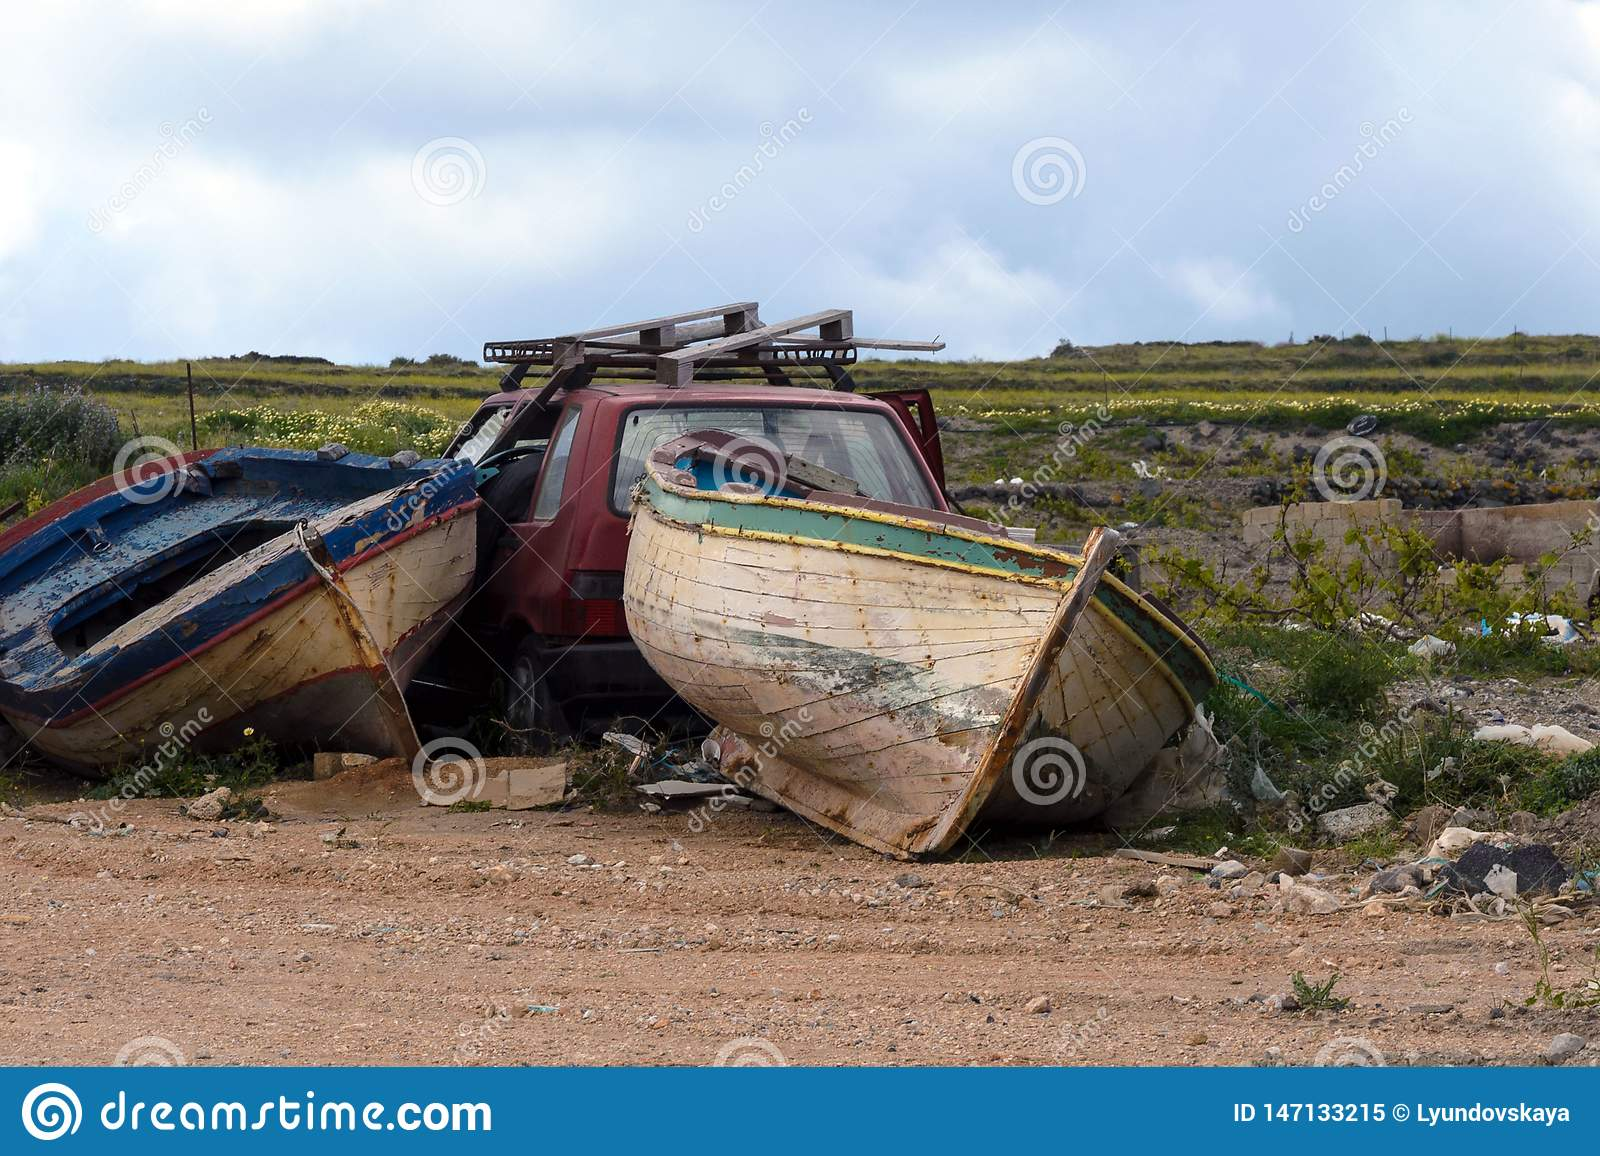 Two old abandoned fishing boats and a red wrecked car in a garbage dump. Abandoned things. Transport